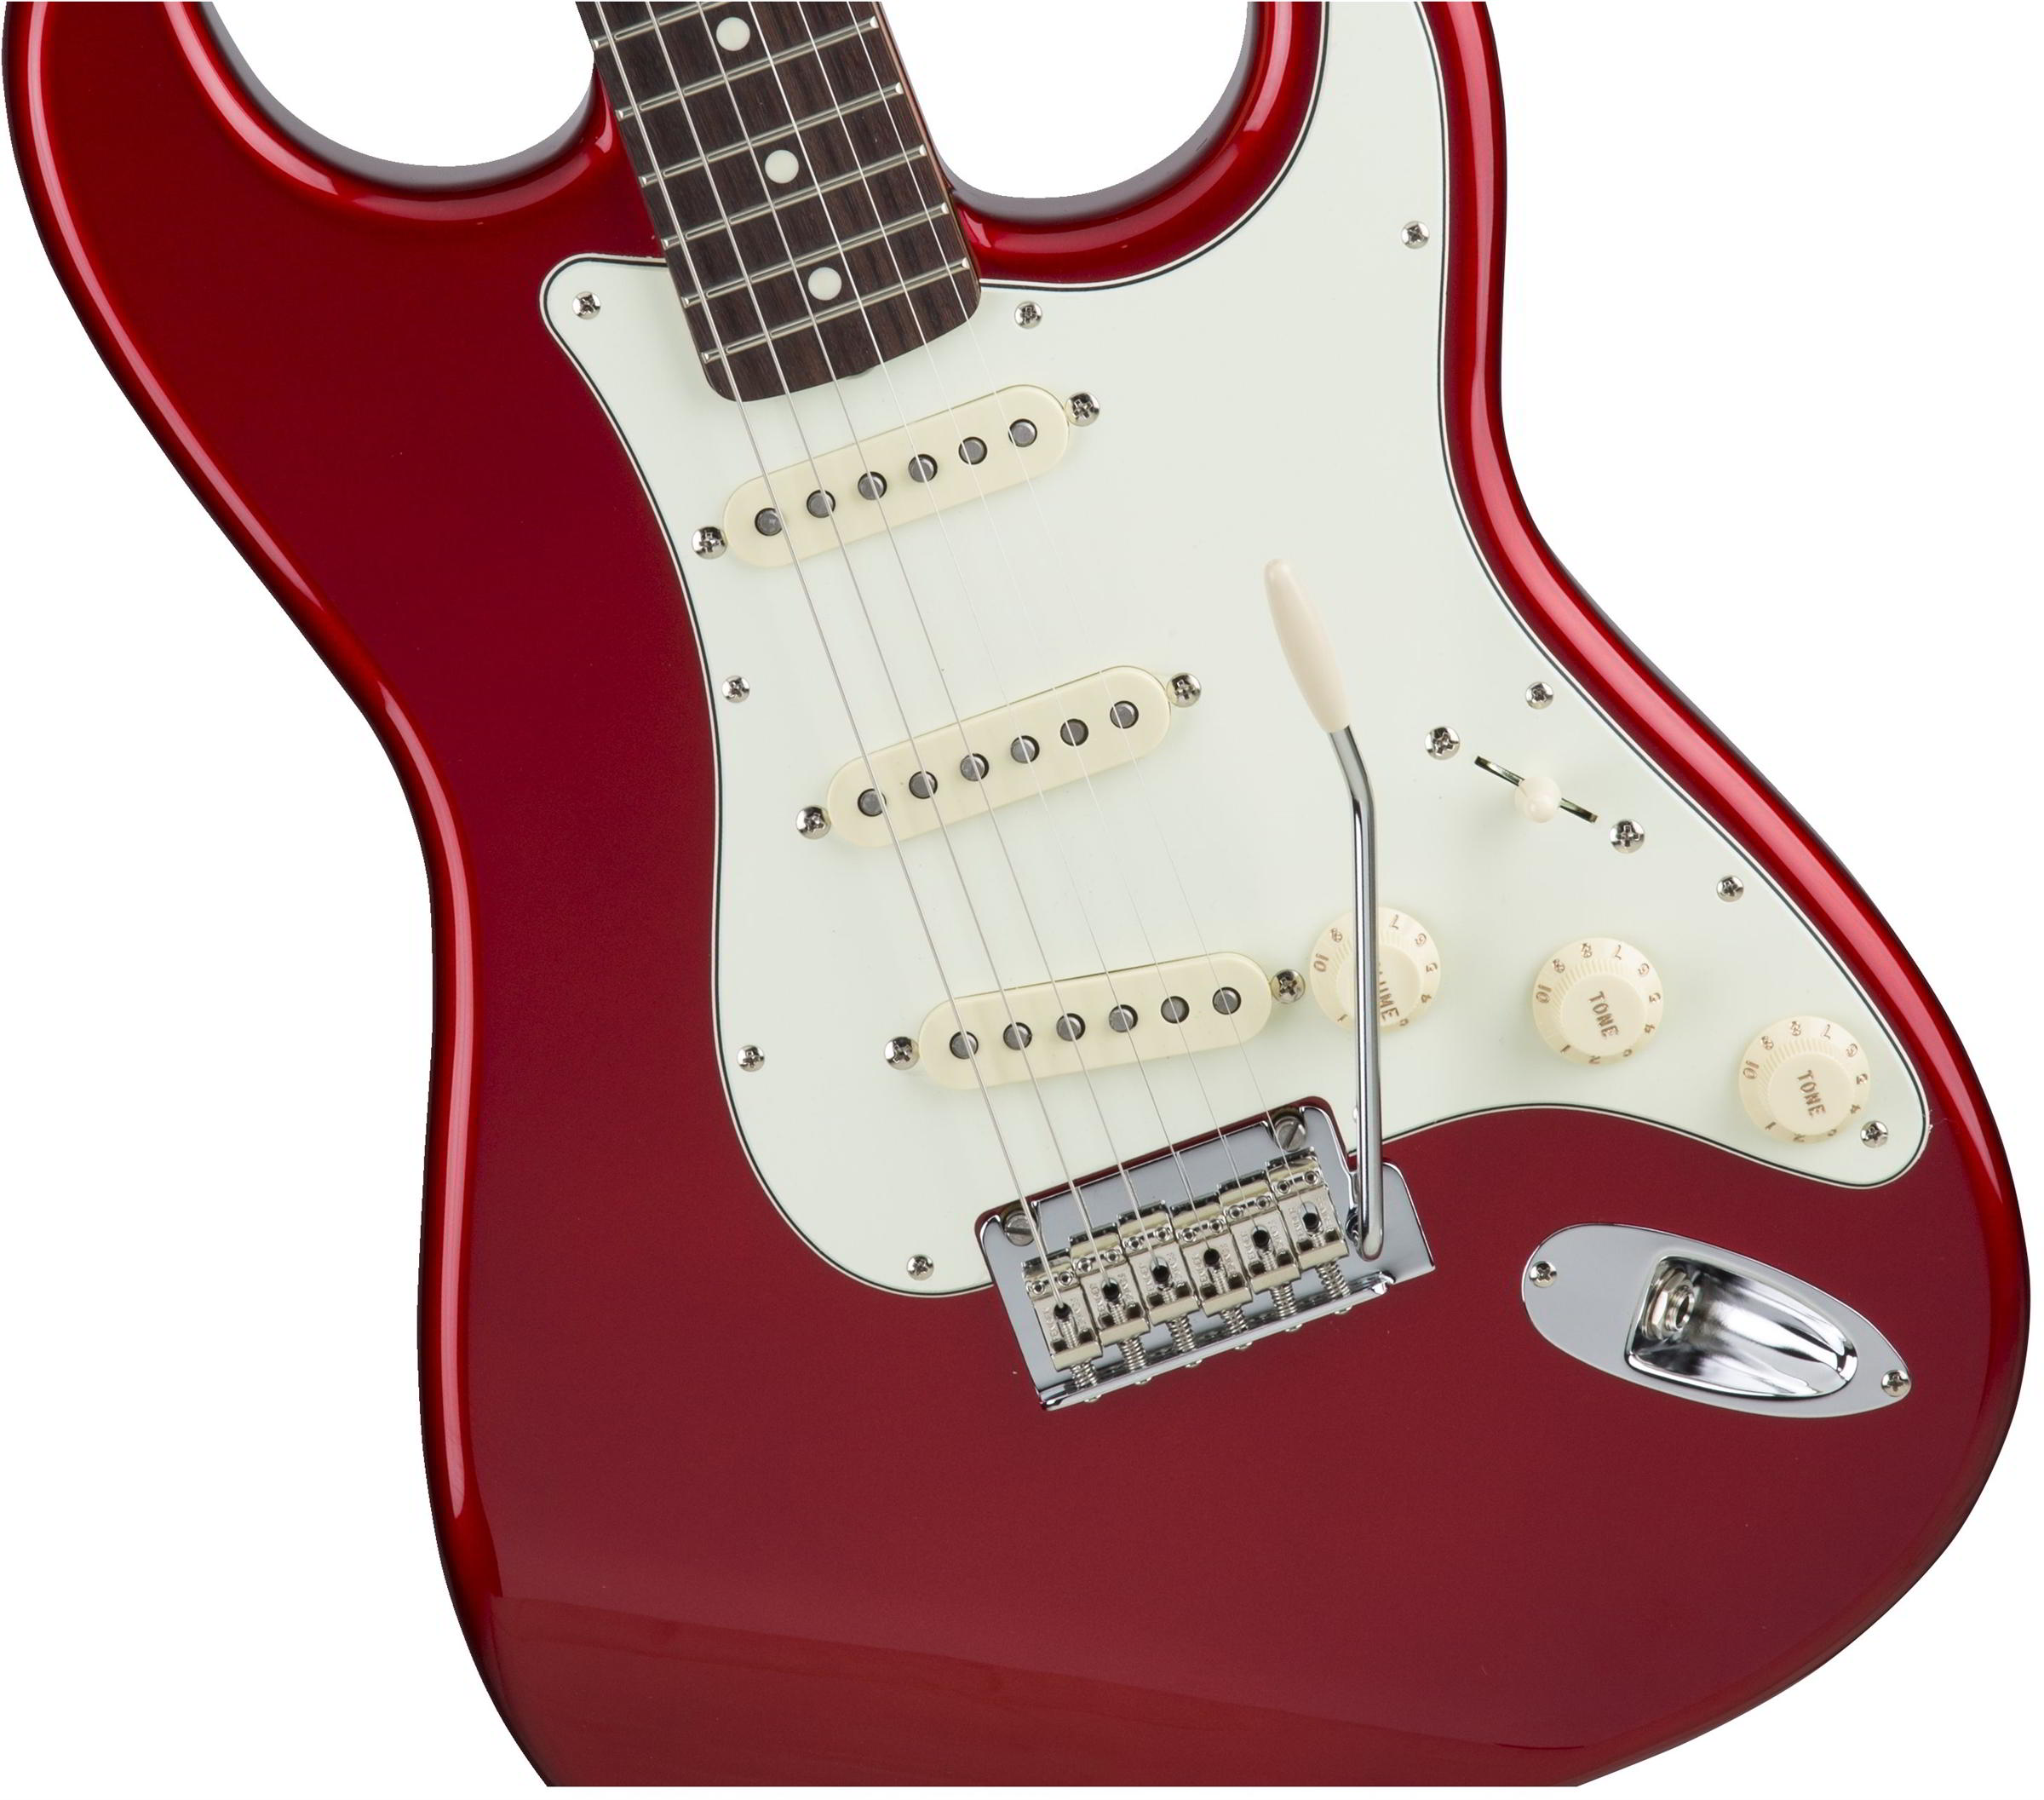 Made in Japan Hybrid 60s Stratocaster Candy Apple Red追加画像